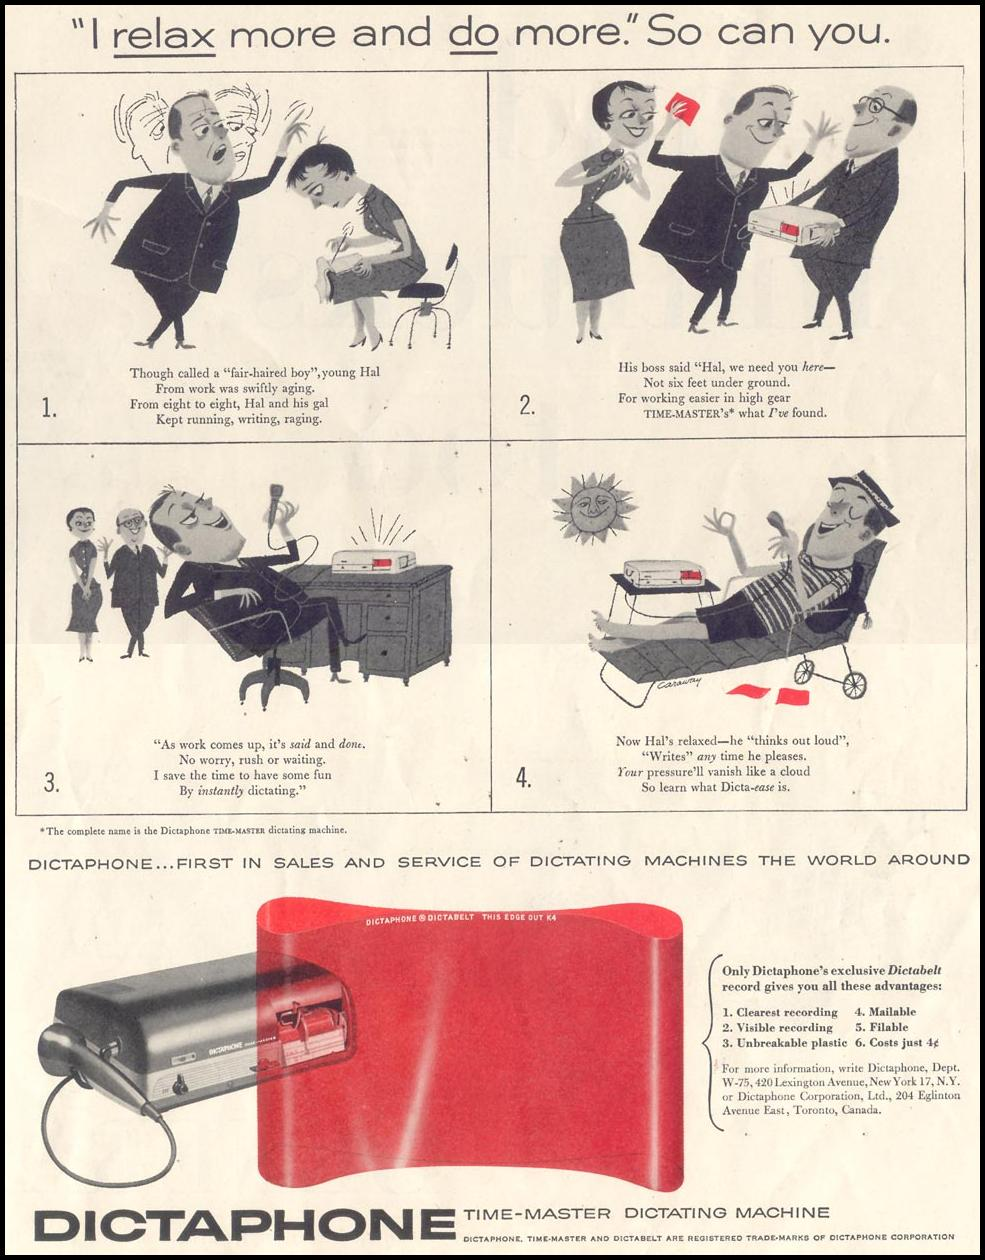 DICTAPHONE DICTATING MACHINE SATURDAY EVENING POST 07/23/1955 p. 13